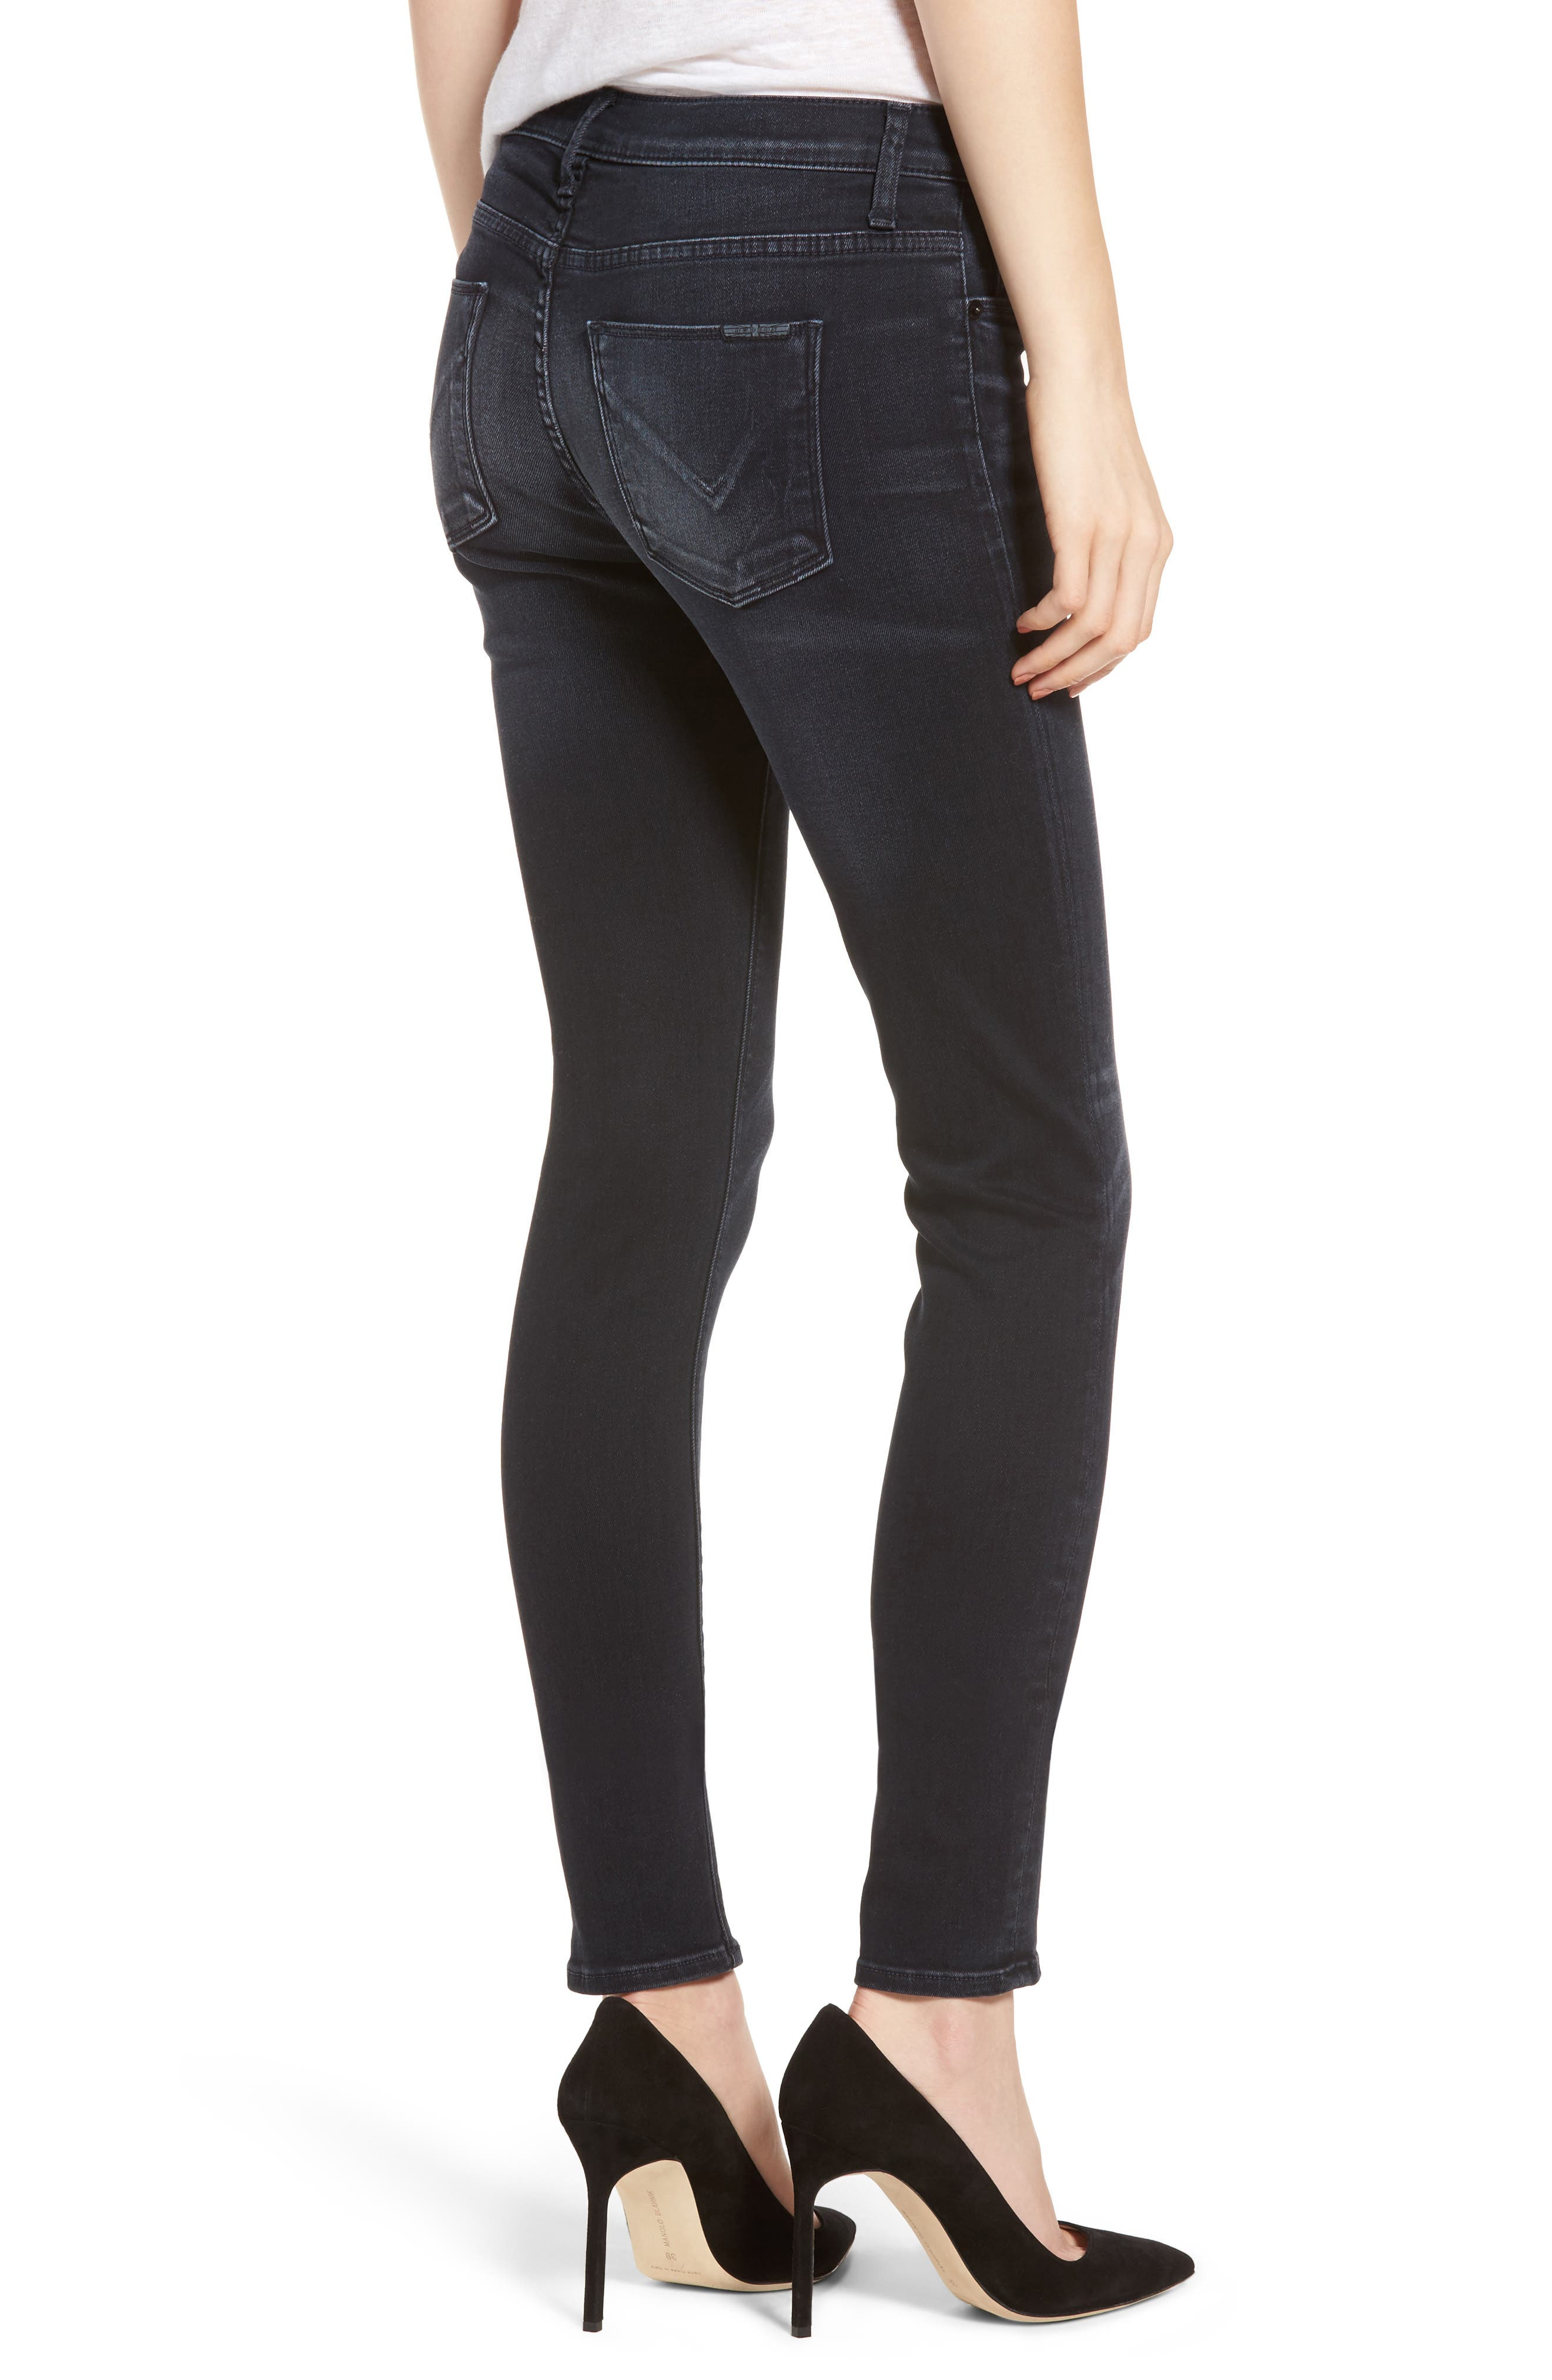 Nico Super Skinny Jeans,                             Alternate thumbnail 2, color,                             Soft Shock